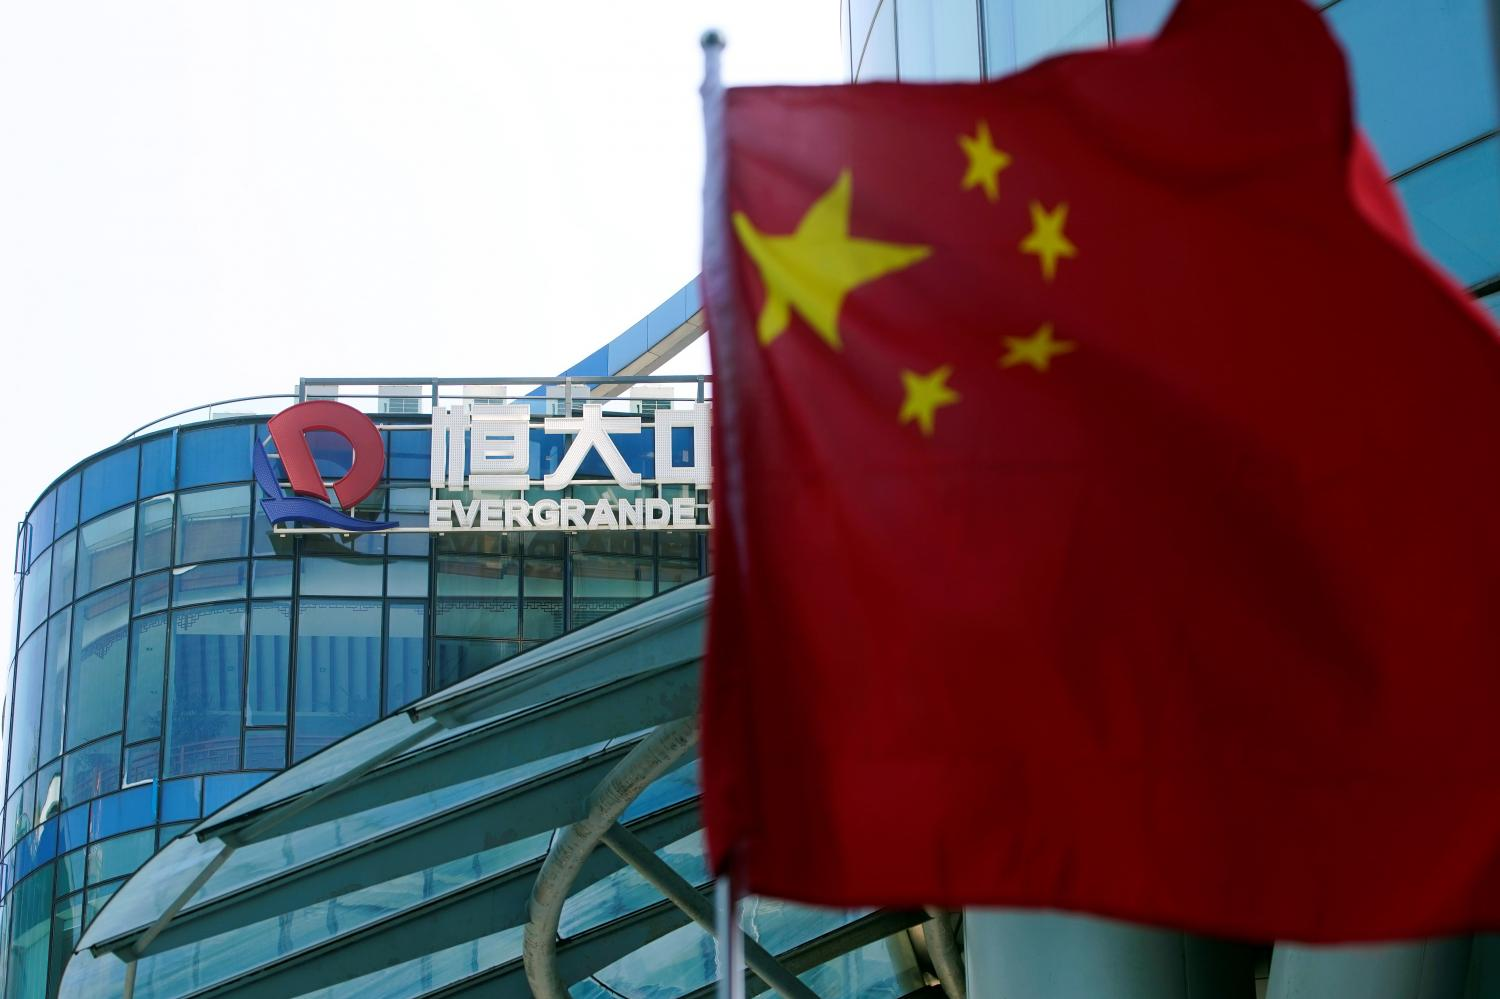 For Xi and Evergrande, a delicate balancing act